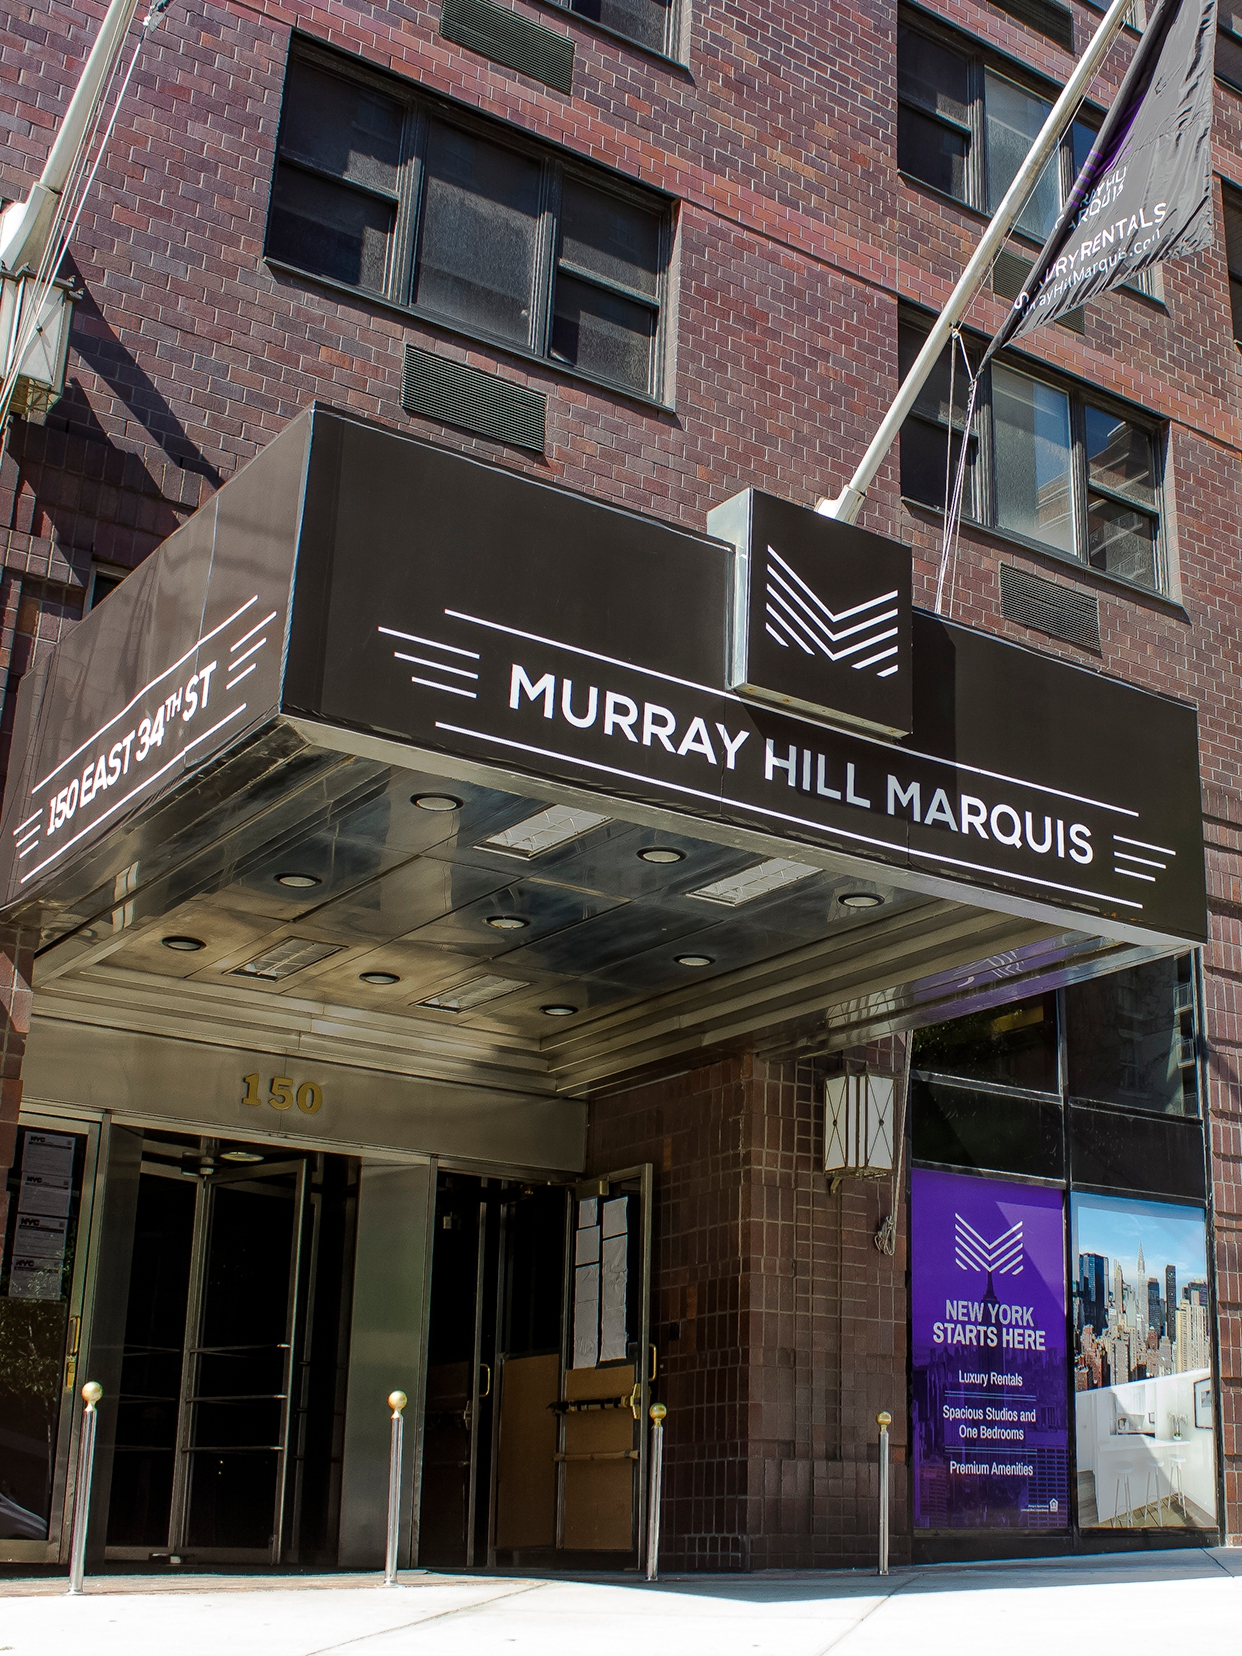 Murray Hill Marquis, 150 East 34th Street